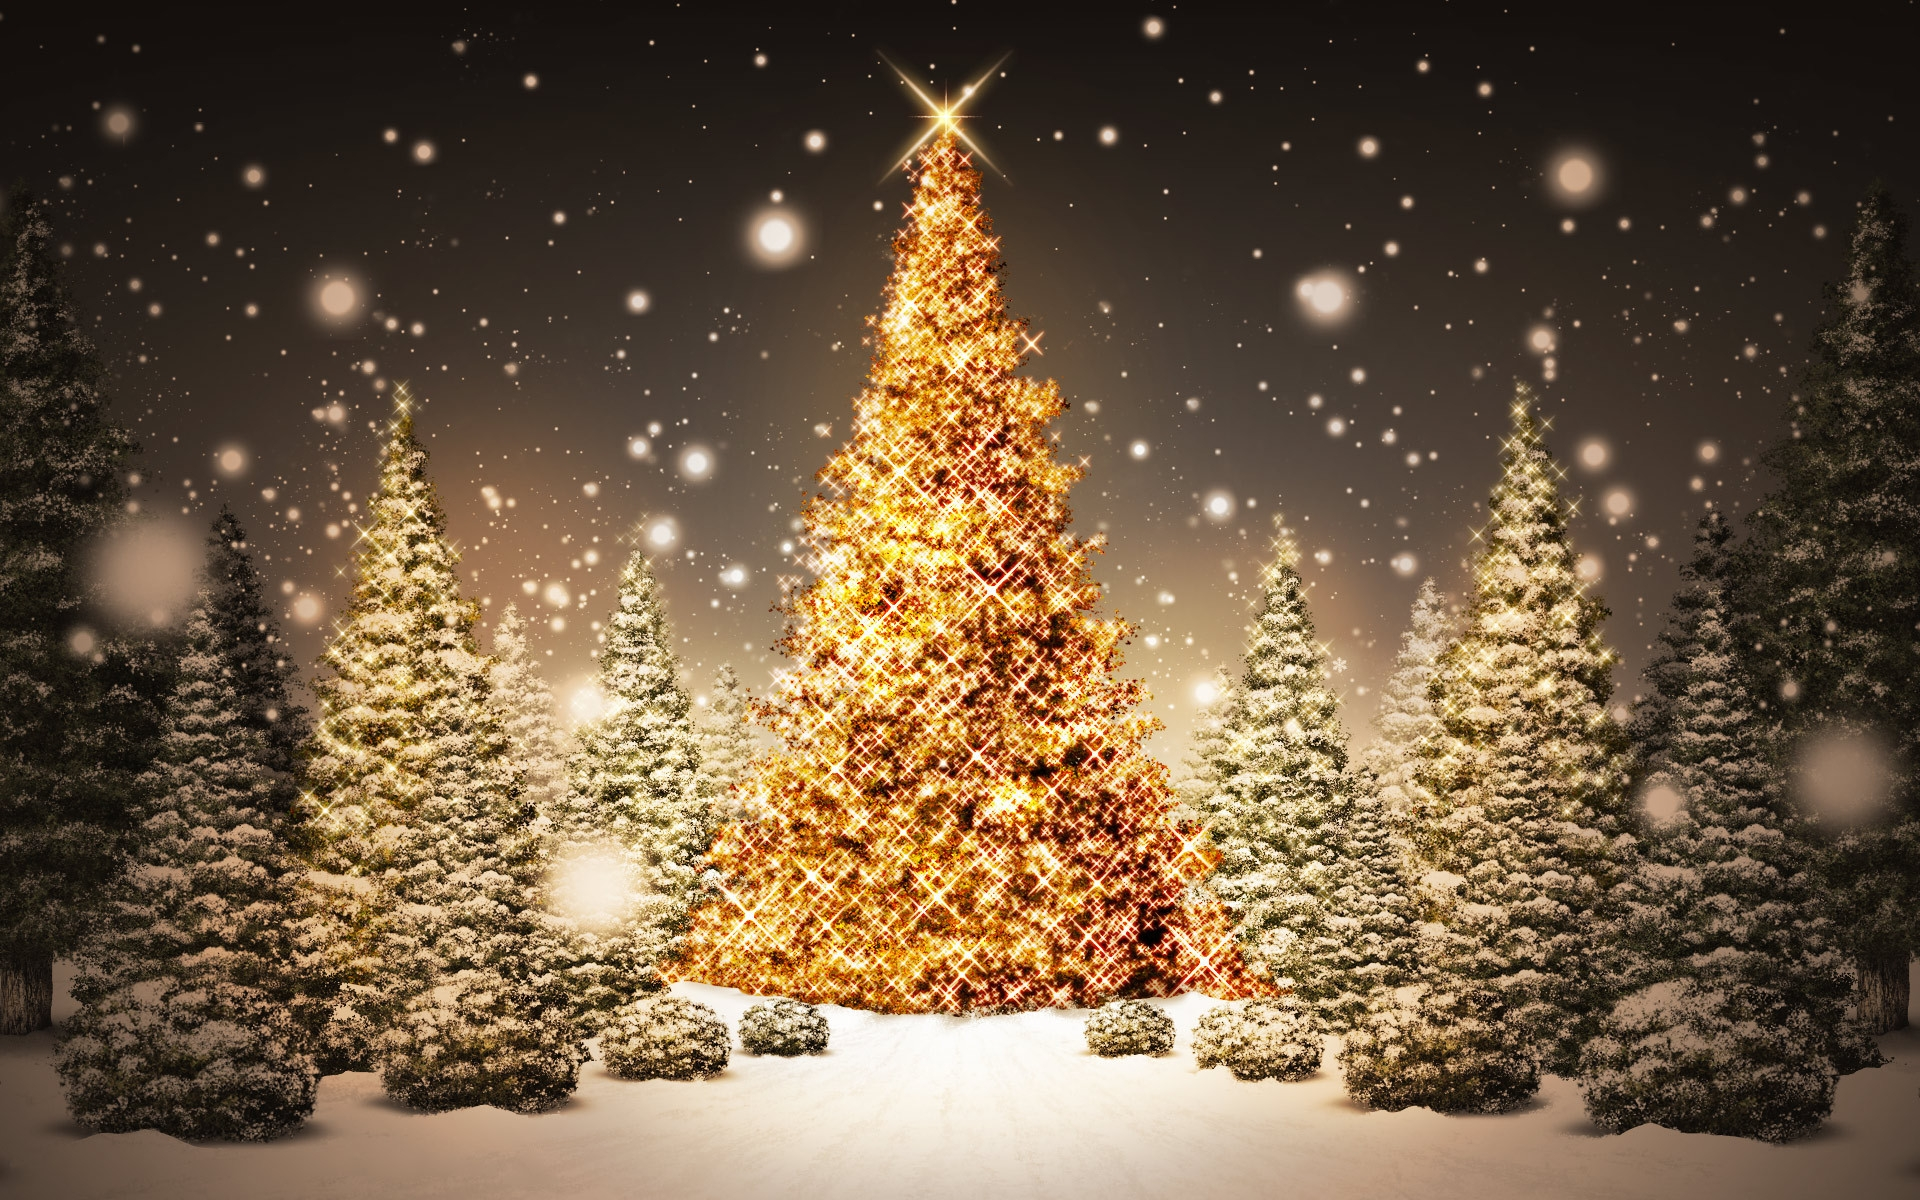 Wallpapers 3d Christmas Tree Backgrounds Desktop Wallpapers 1920x1200